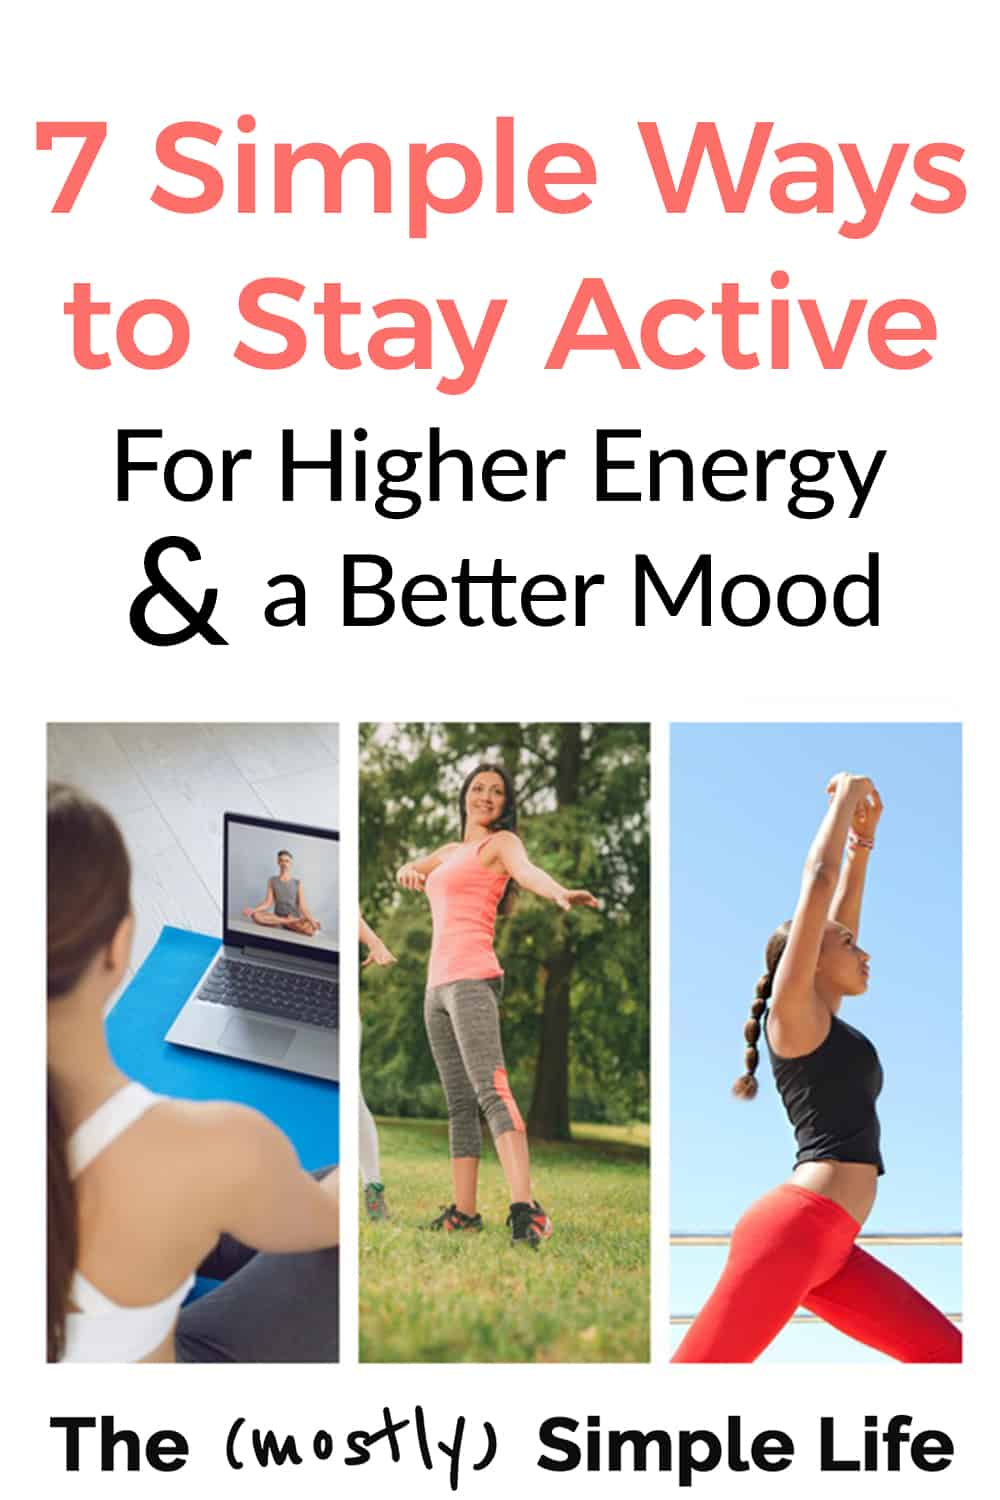 7 Simple Ways to Stay Active to Improve Your Mood & Increase Happiness